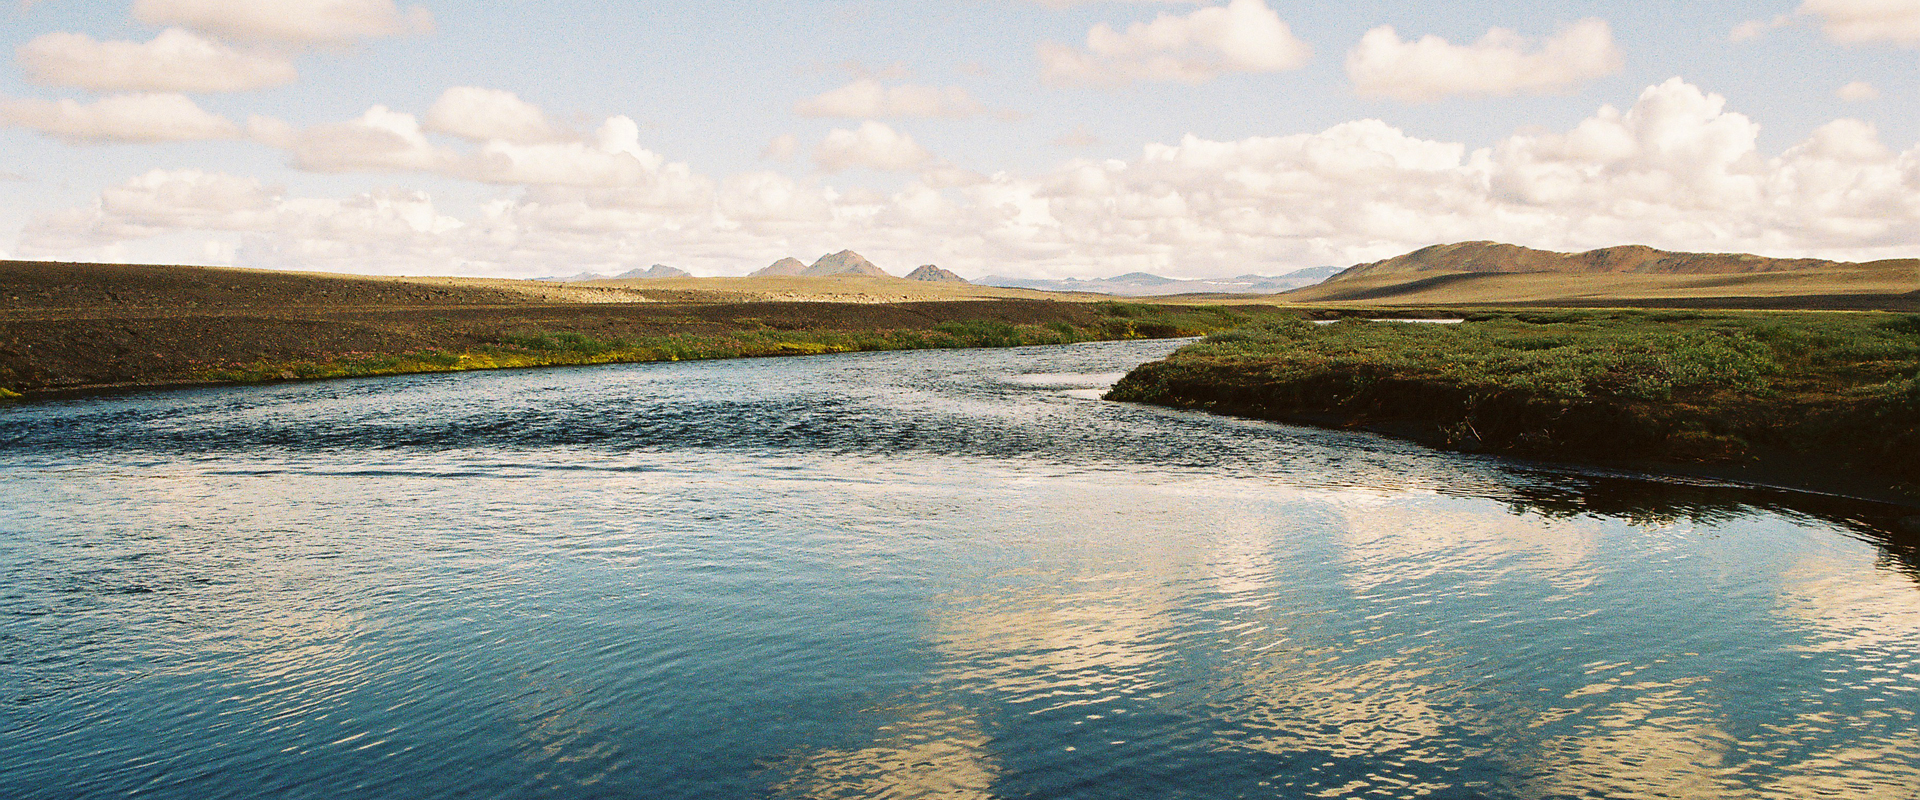 islande-hello-adventures-76-askja-ae1-wide